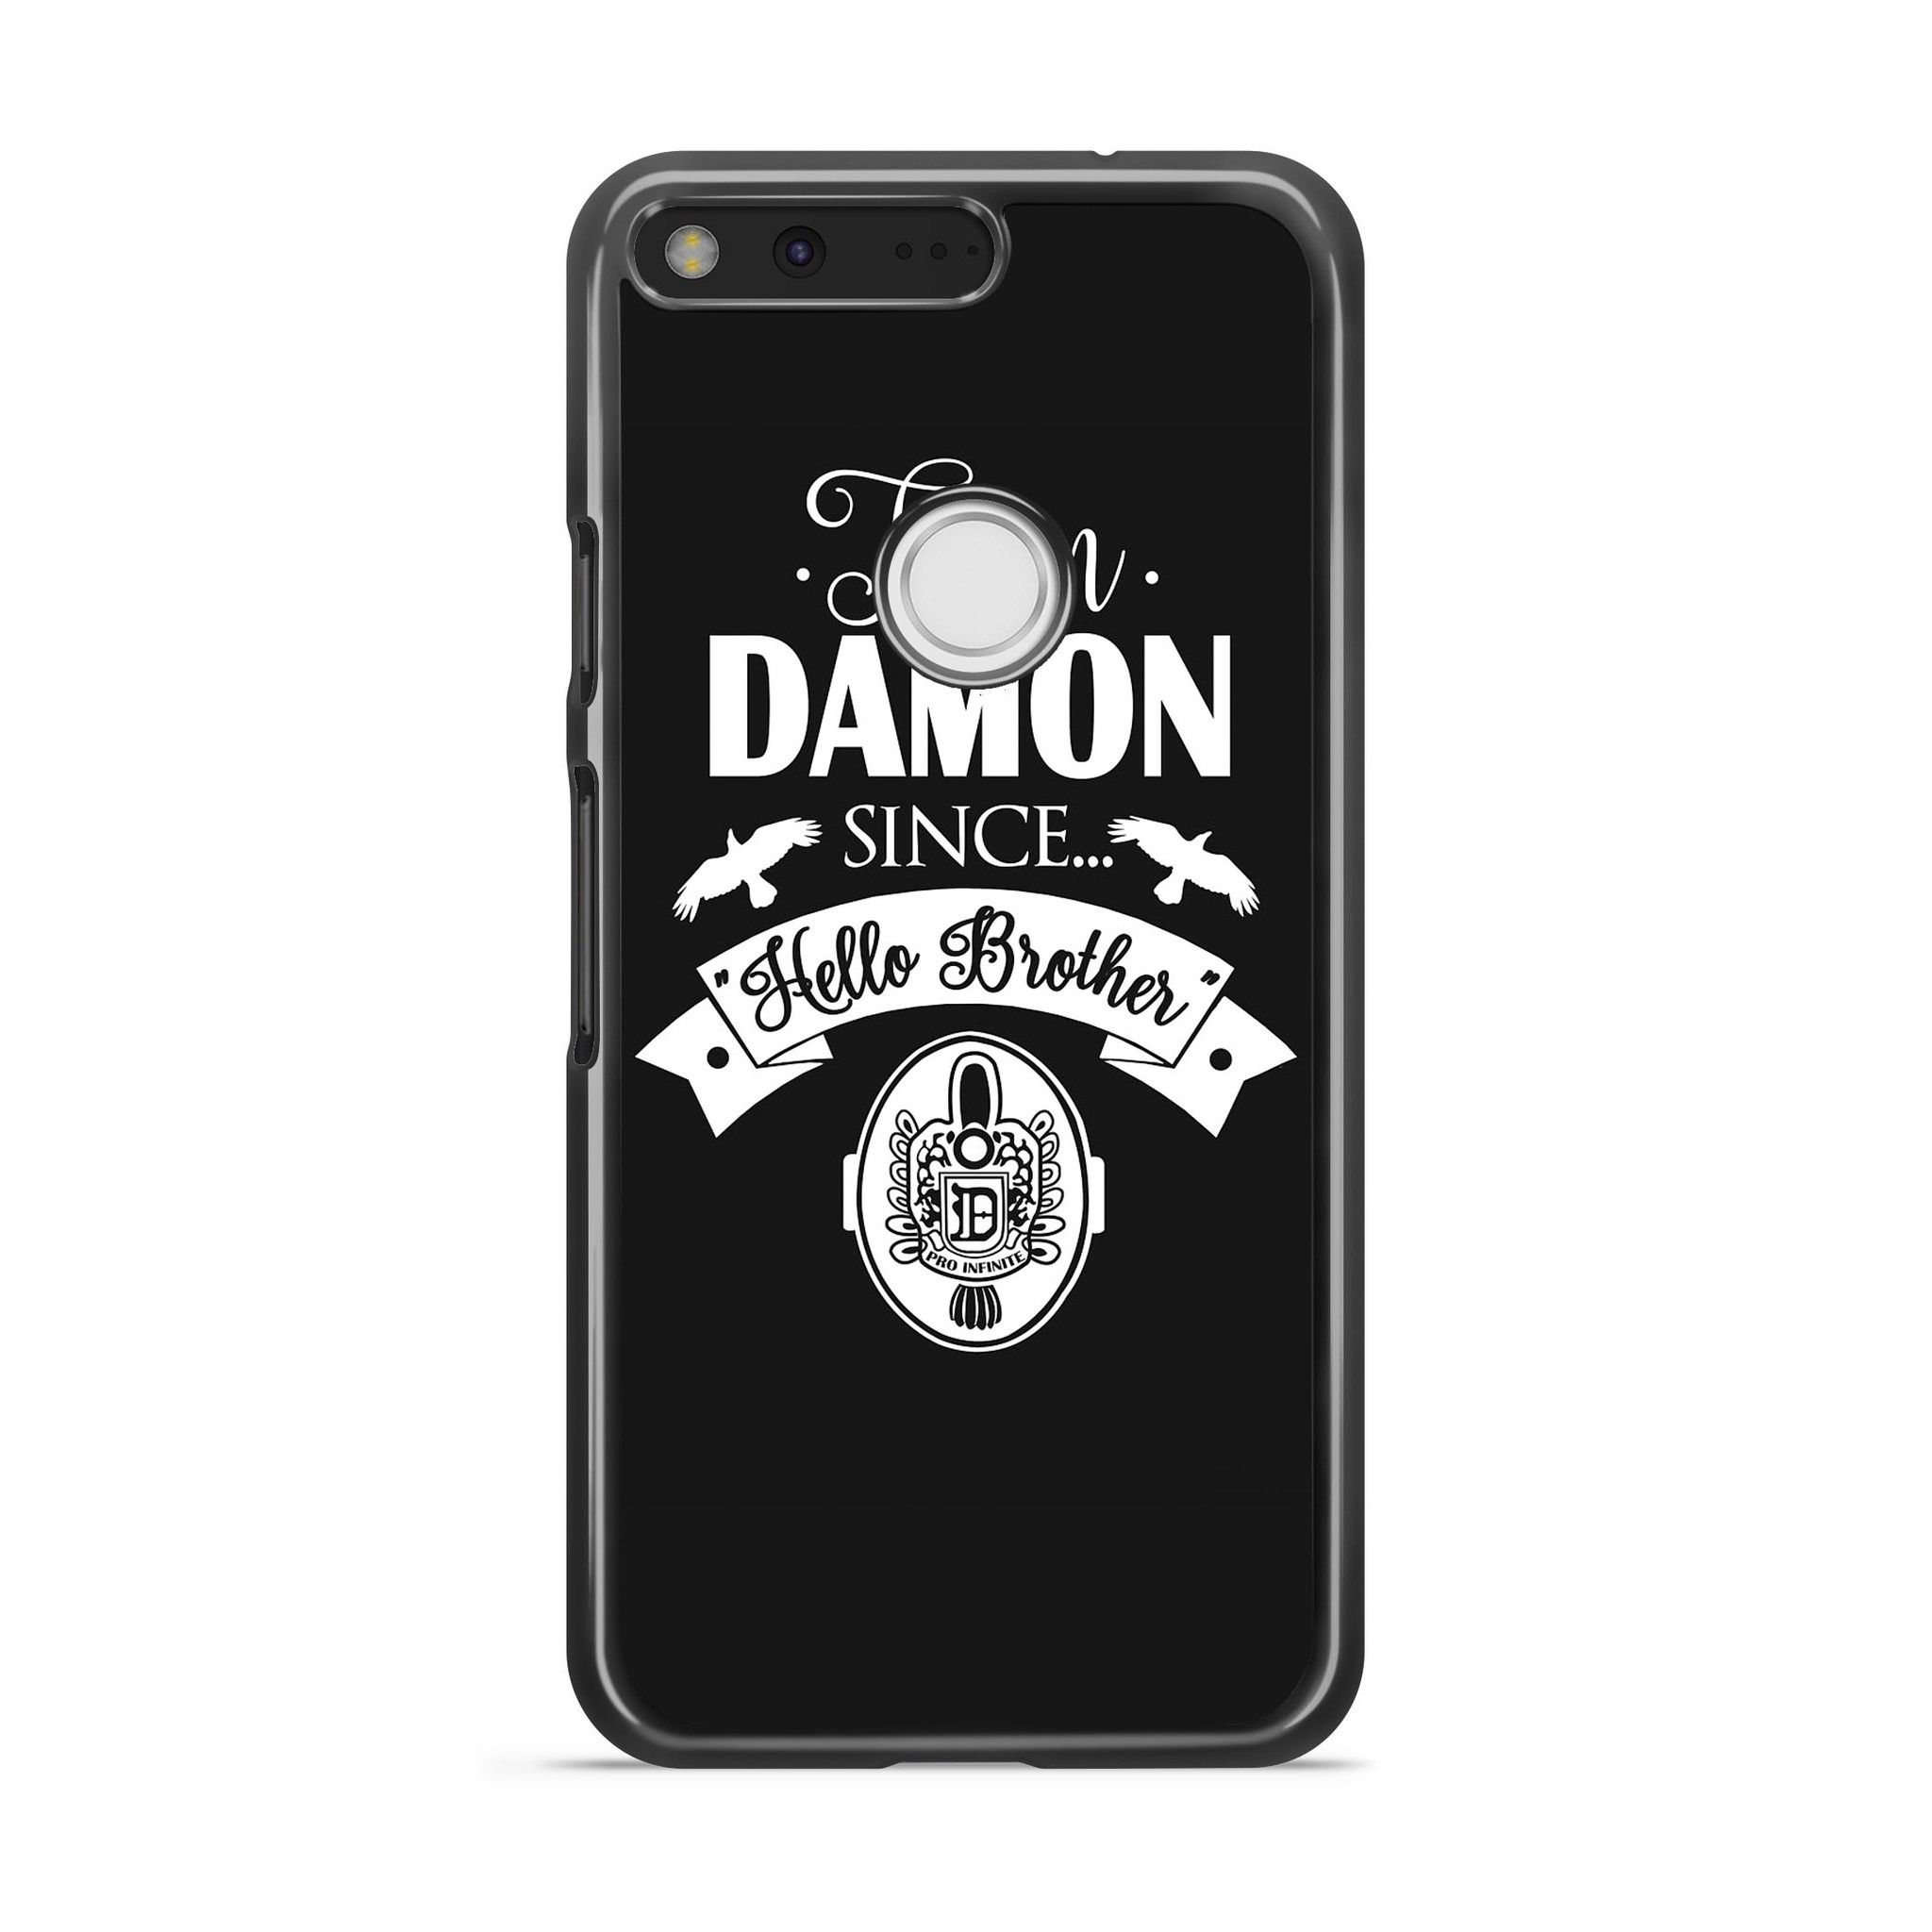 Team Damon Since ... - http://www.casesity.com/products/team-damon-since-hello-brother-the-vampire-diaries-google-pixel-case?utm_campaign=social_autopilot&utm_source=pin&utm_medium=pin - #iphone6scase #iphone6pluscase #phonecase